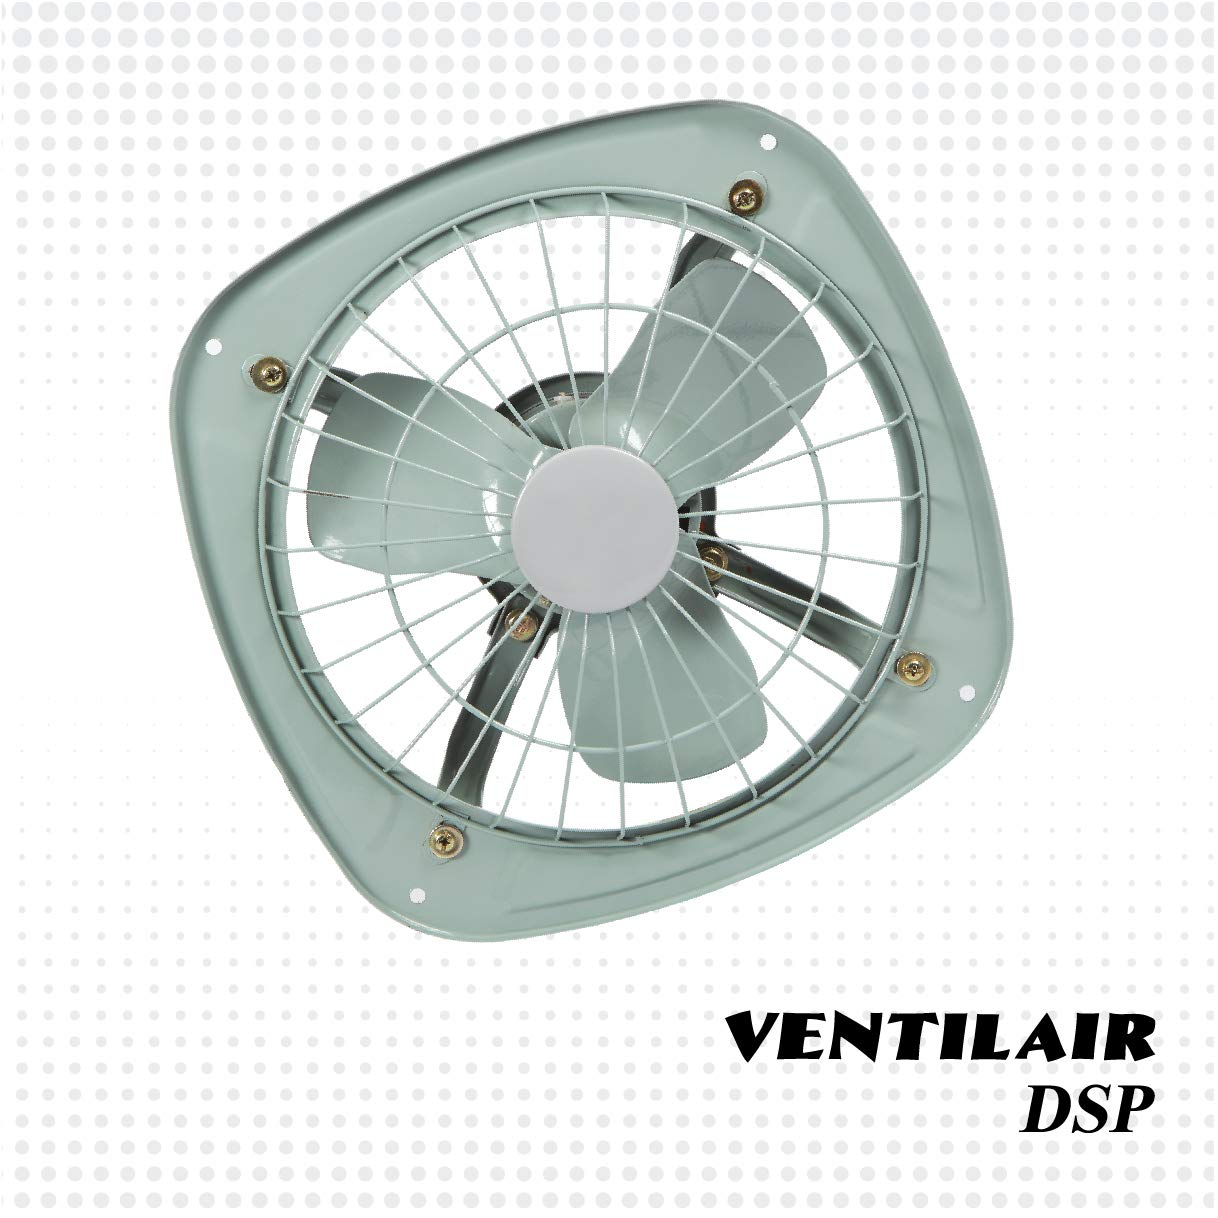 Havells 230mm Ventilair DSP Exhaust Fan